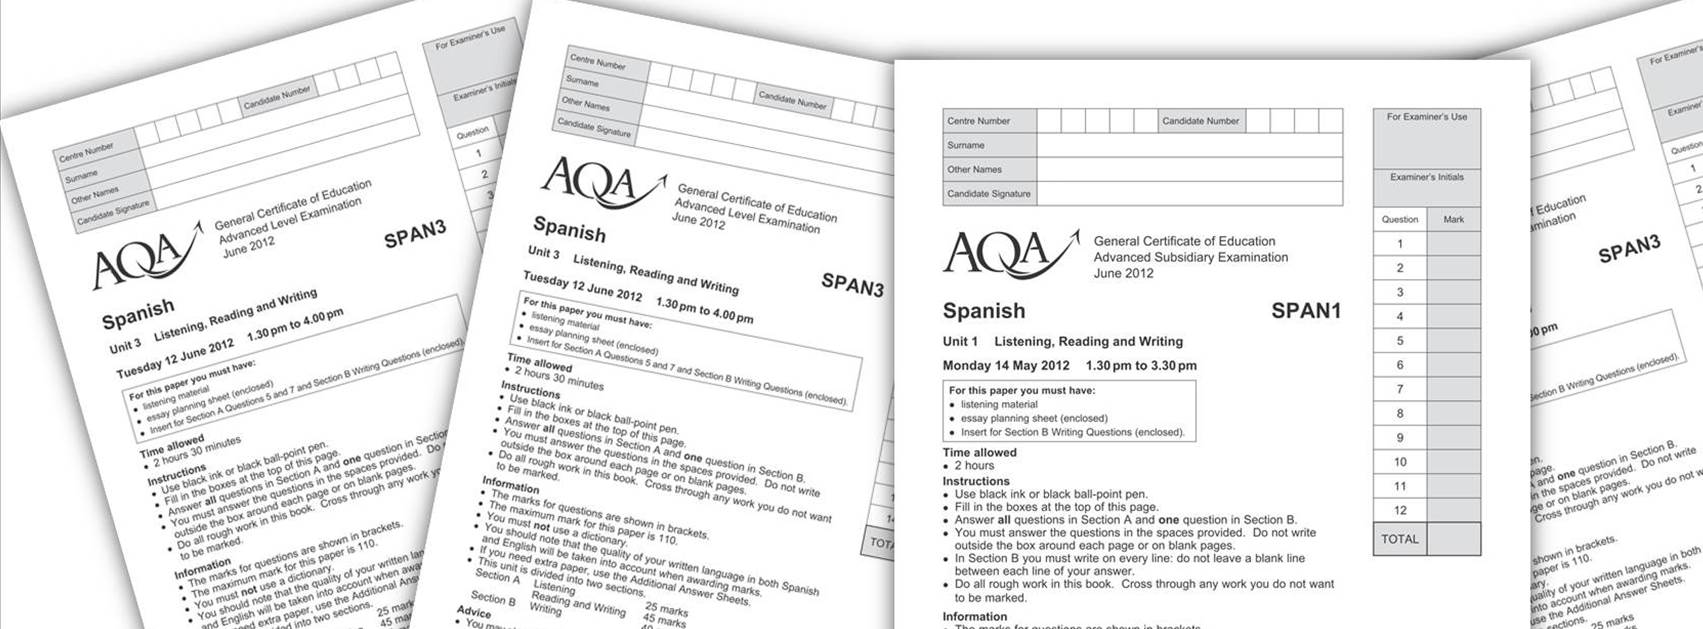 AQA GCSE Maths Past Papers Mark Schemes Specimen Papers